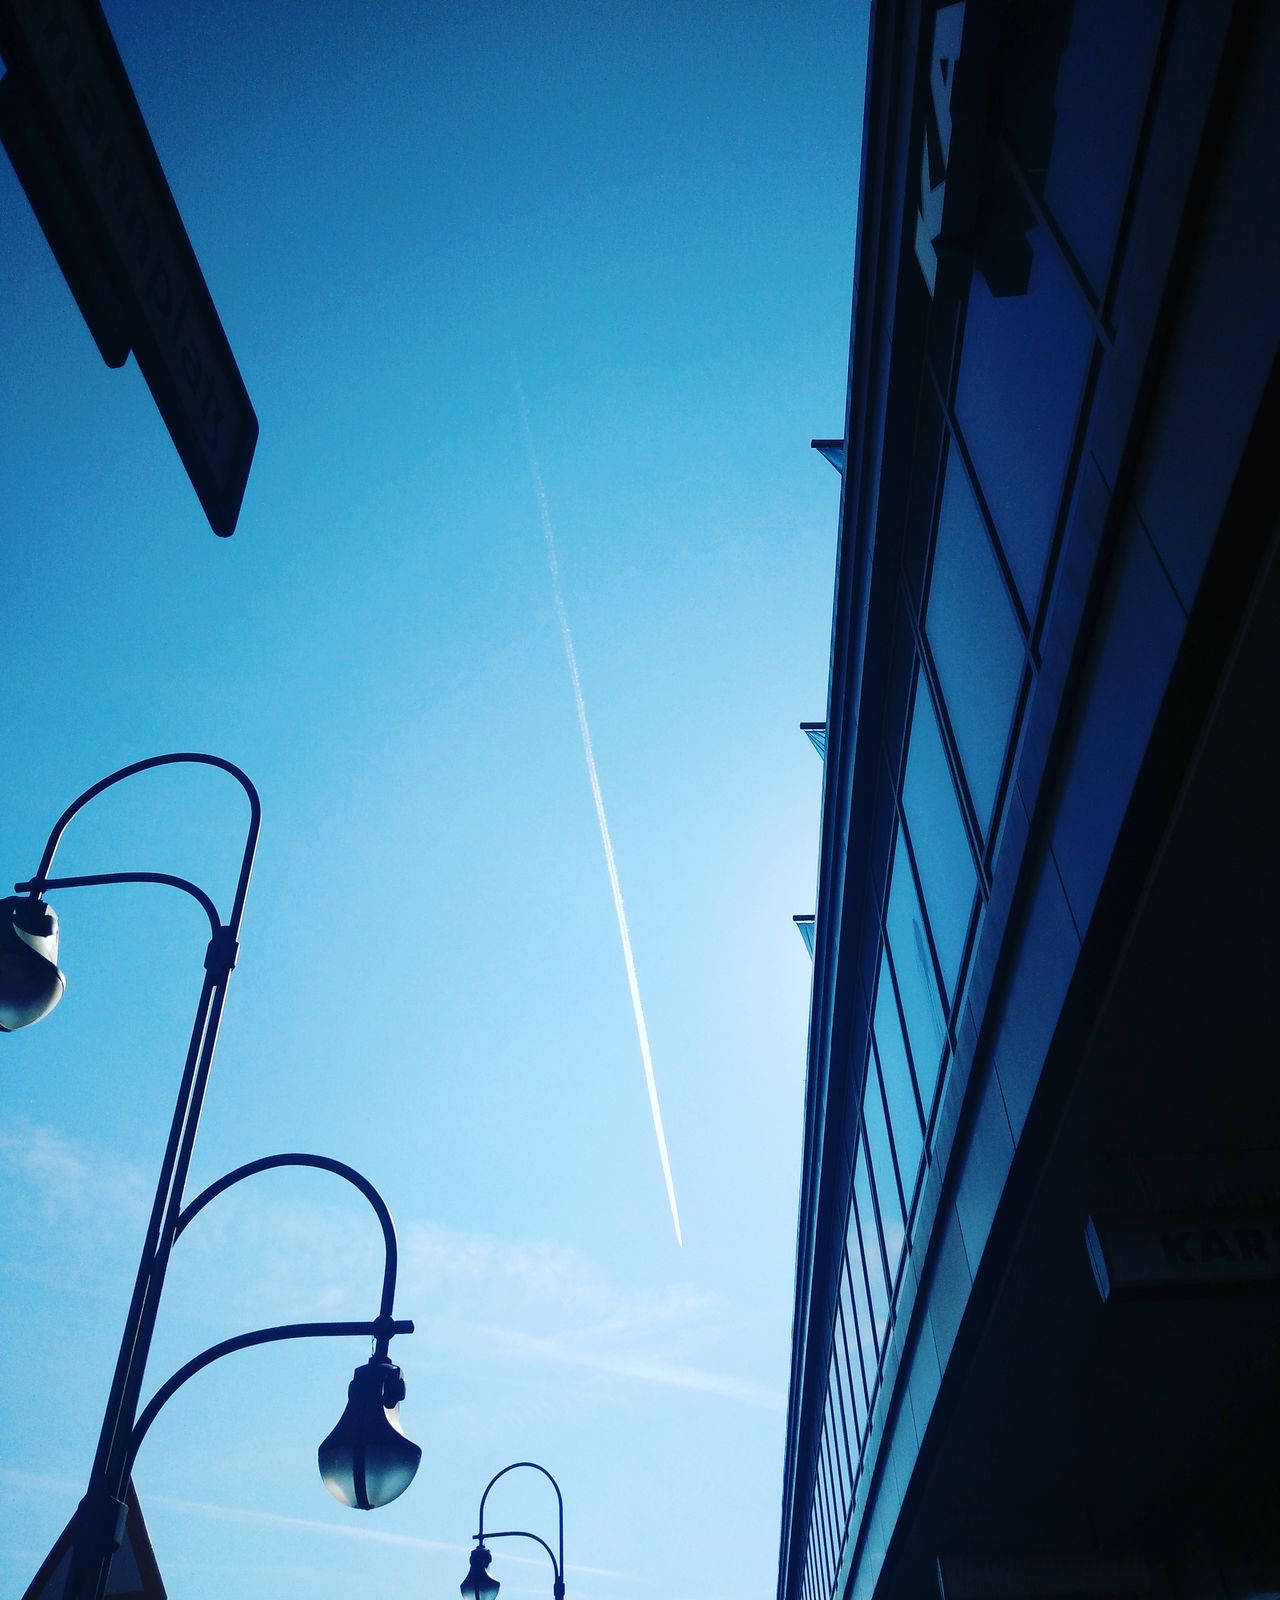 Outdoors Chemtrails Berlin Chemtrail Sky No People Plane Hermannplatz